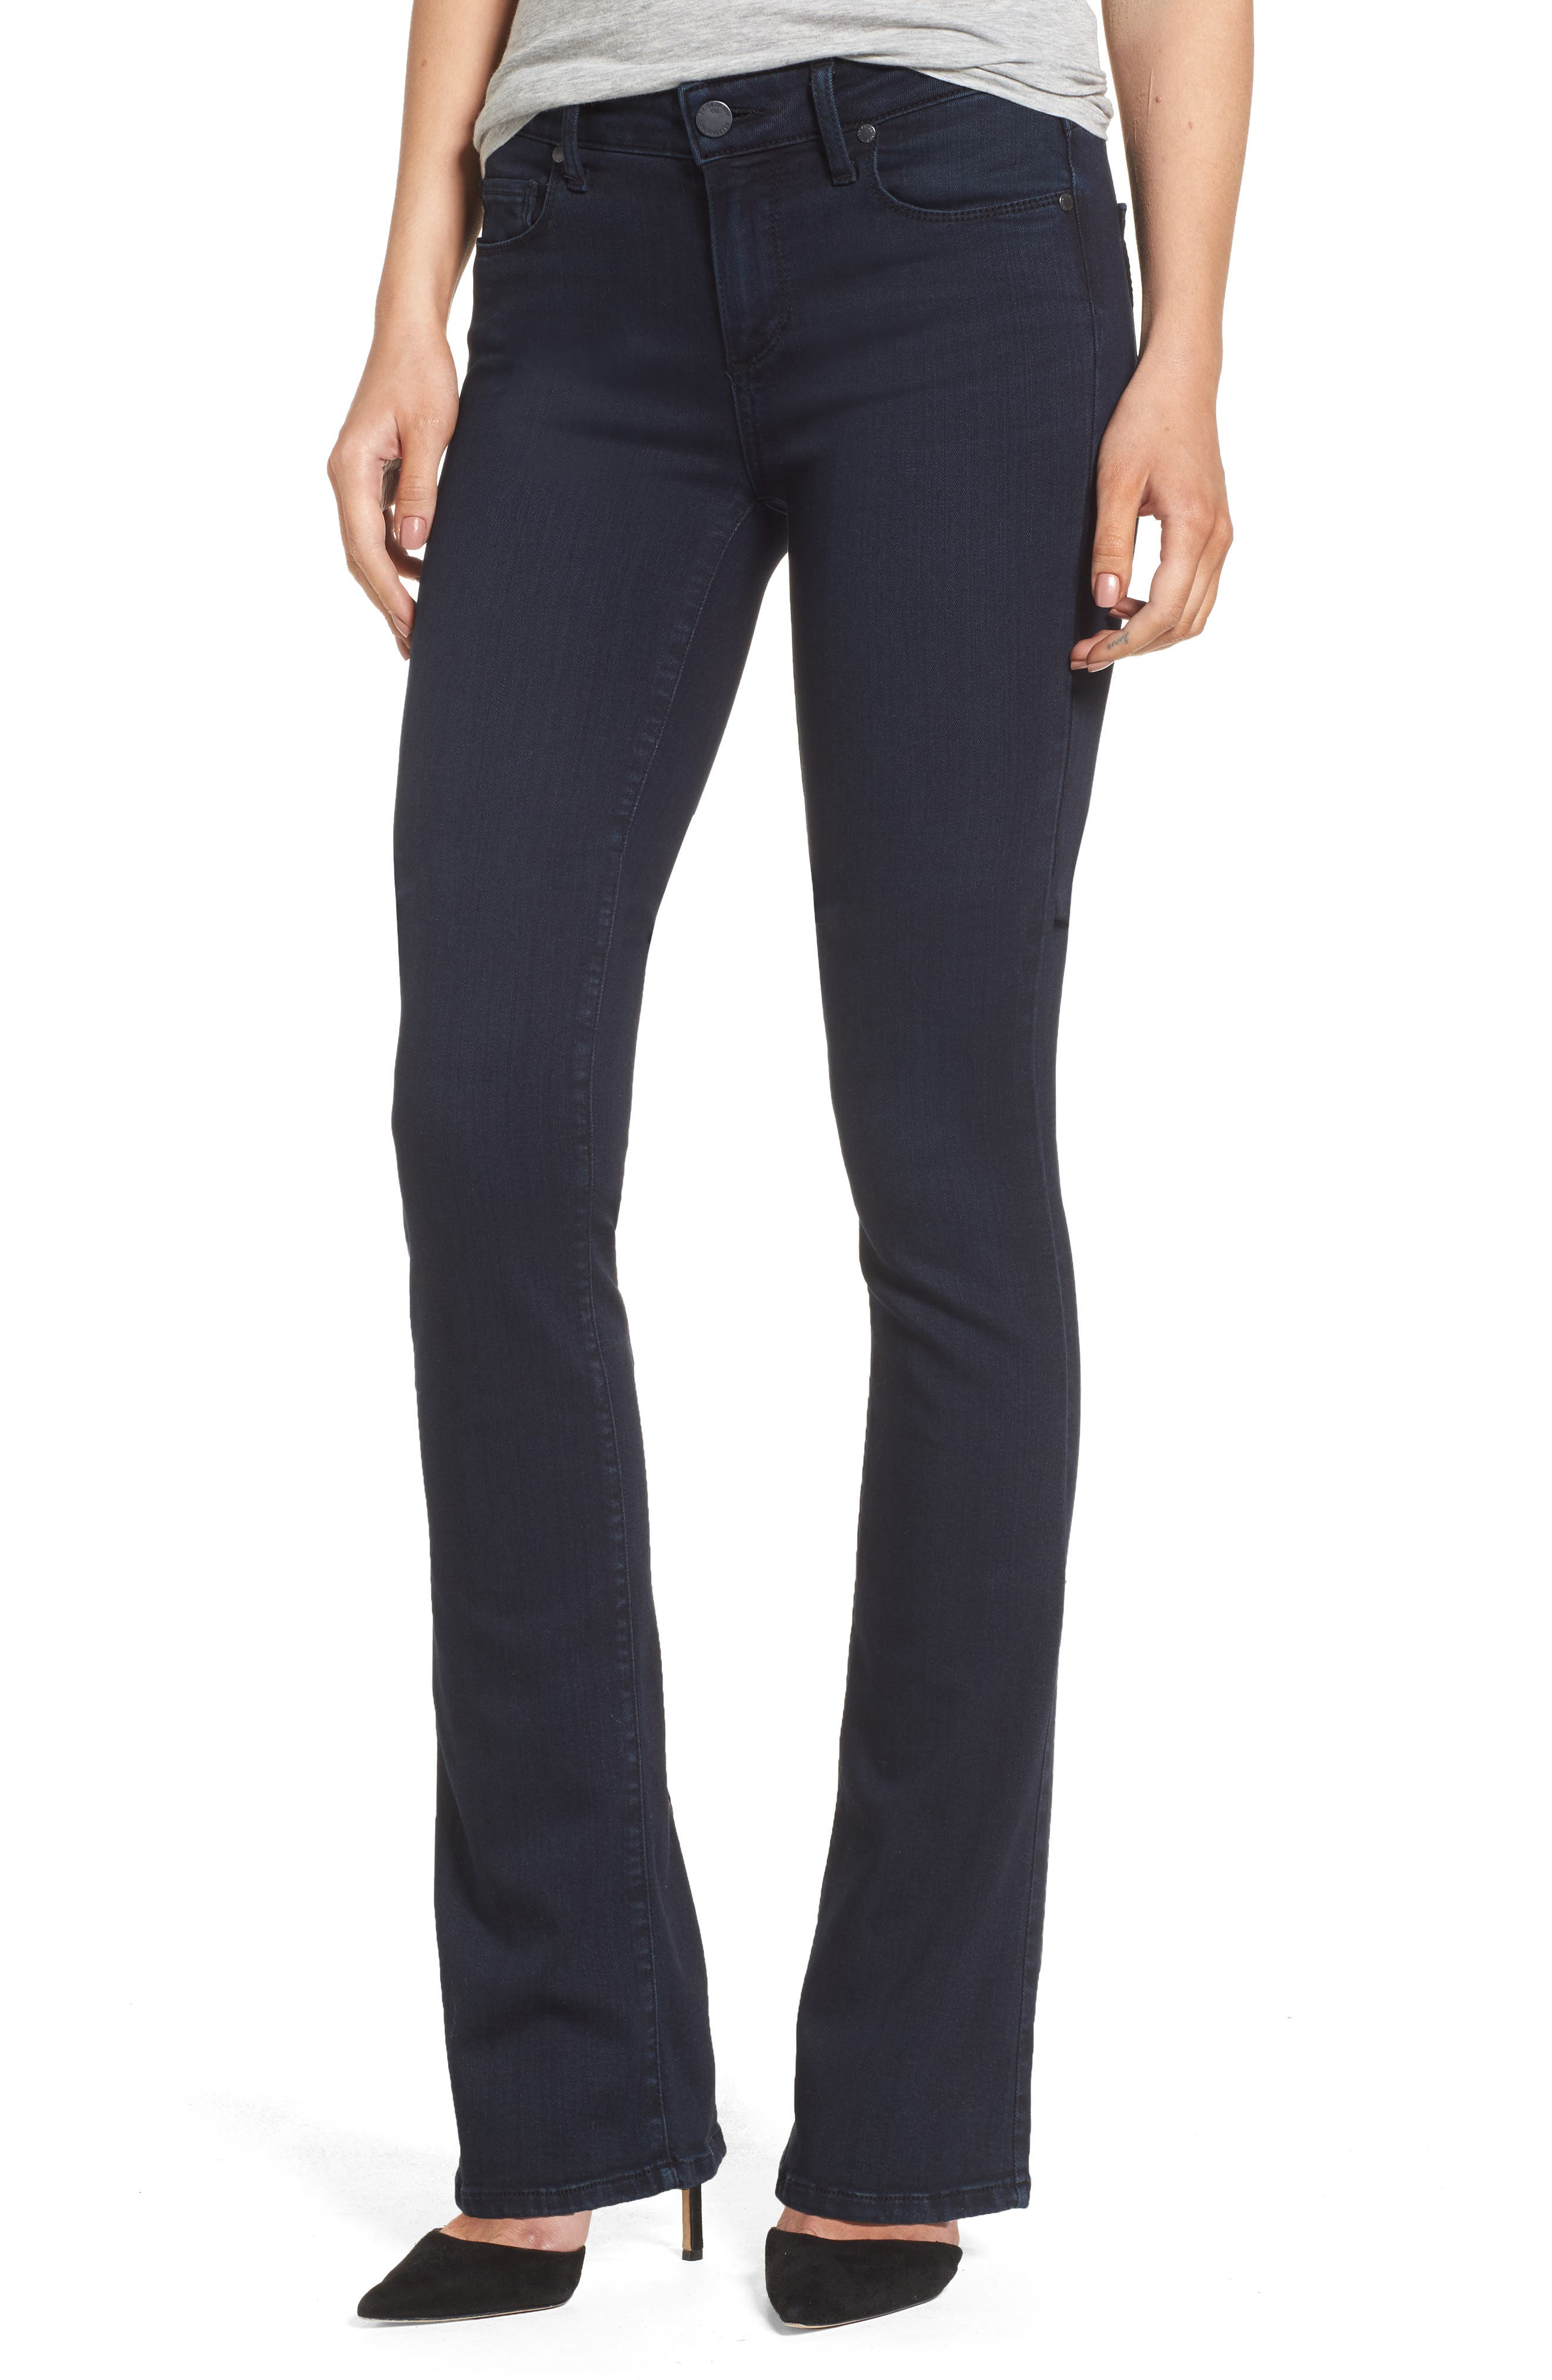 Alternate Image 1 Selected - PAIGE Manhattan High Waist Bootcut Jeans (Brighton) (Petite)